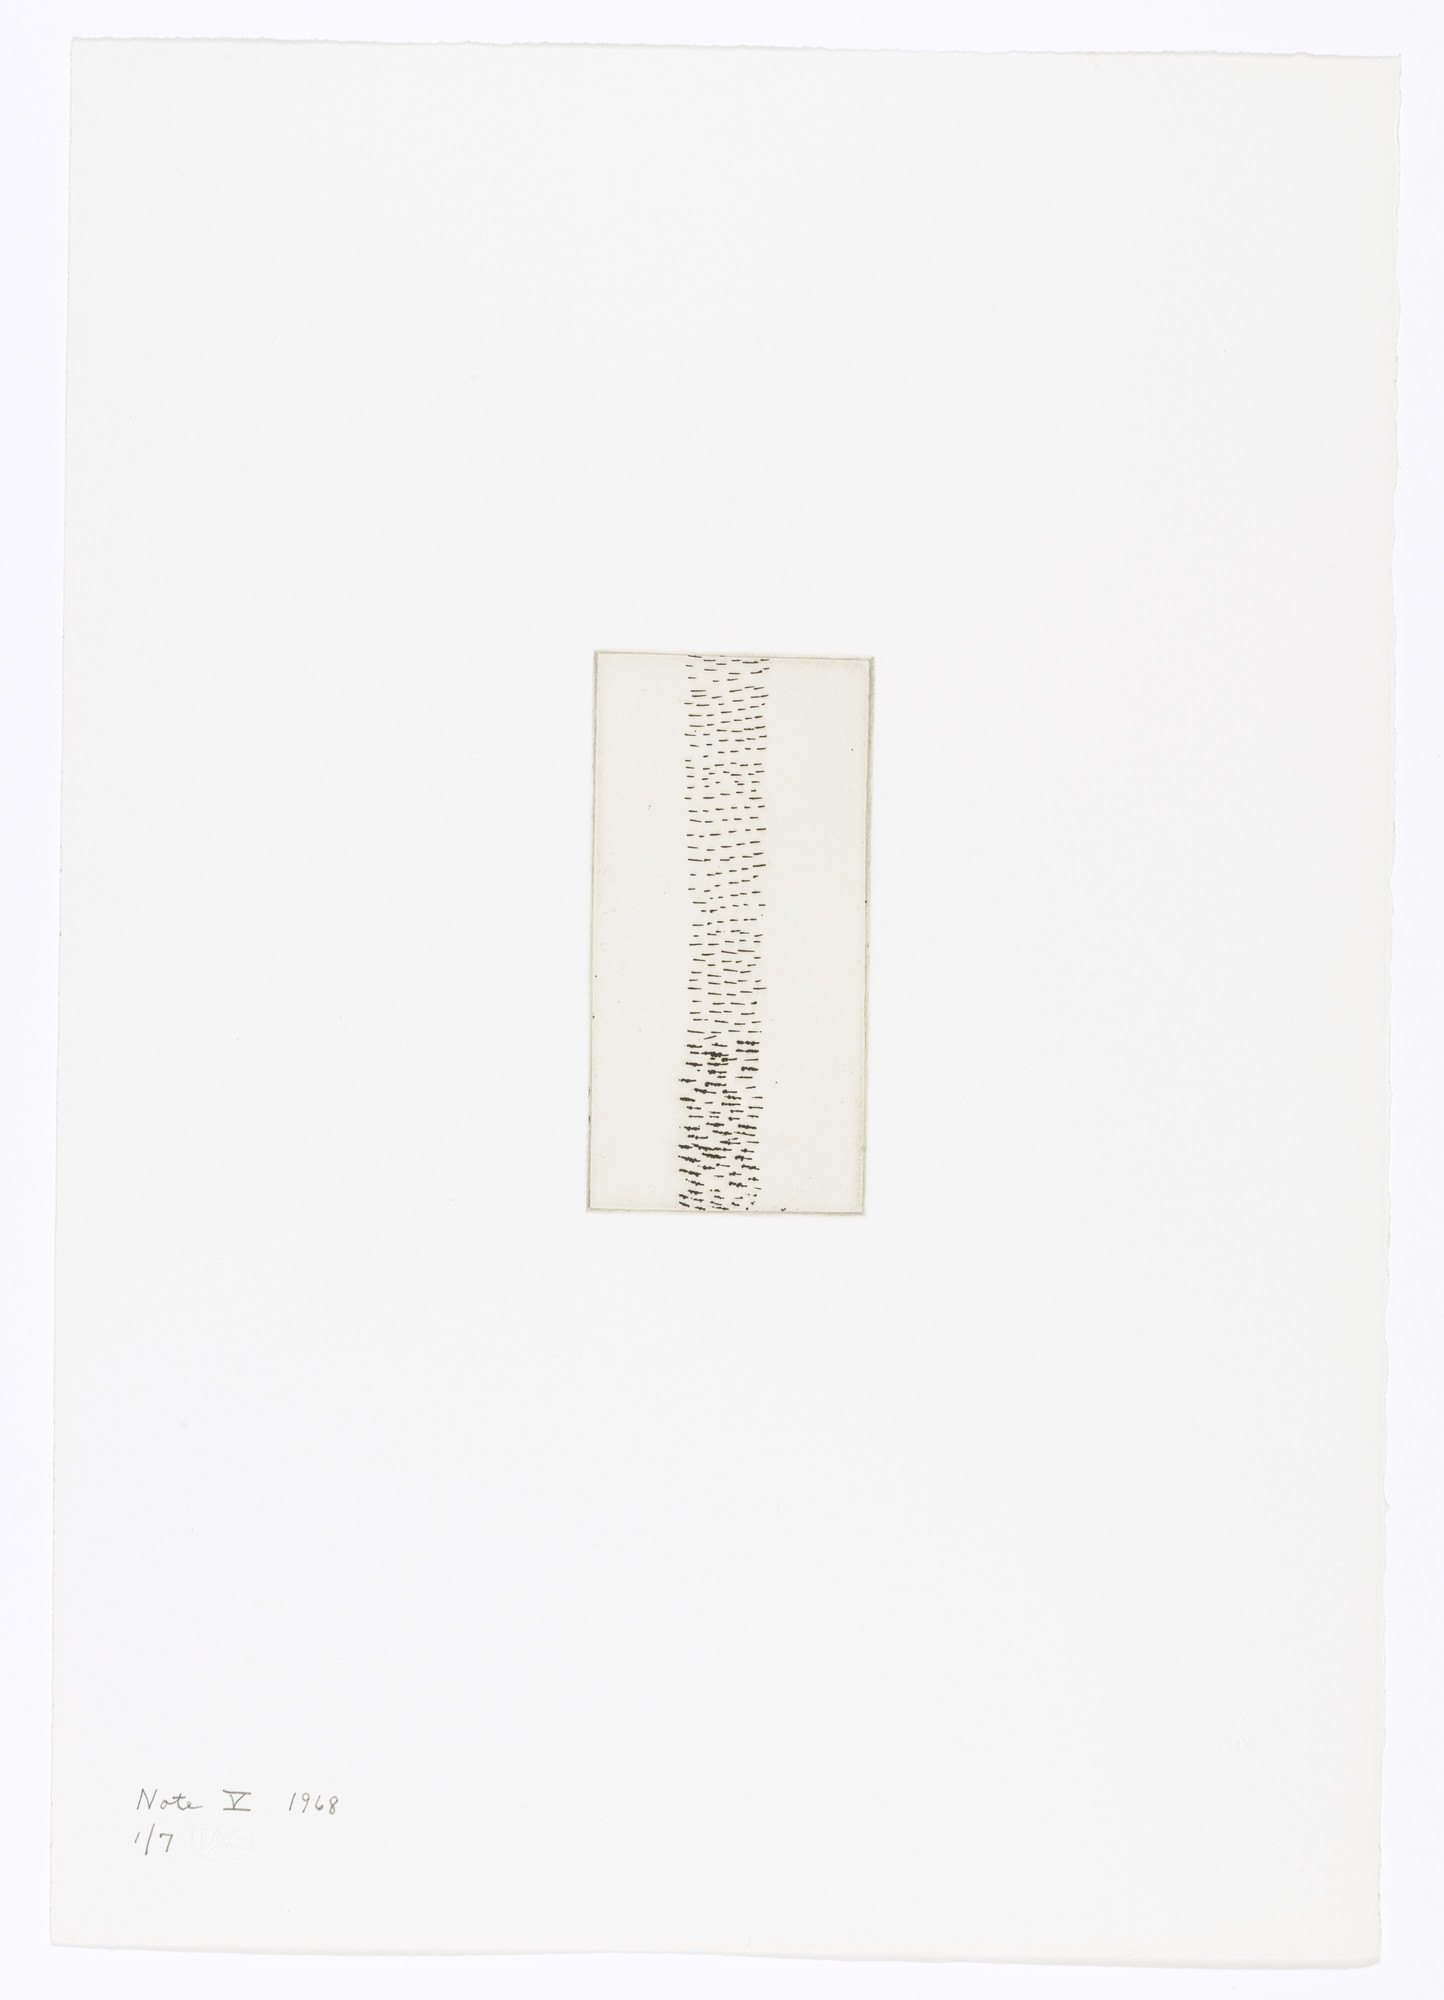 Barnett Newman. Note V from Notes. 1968